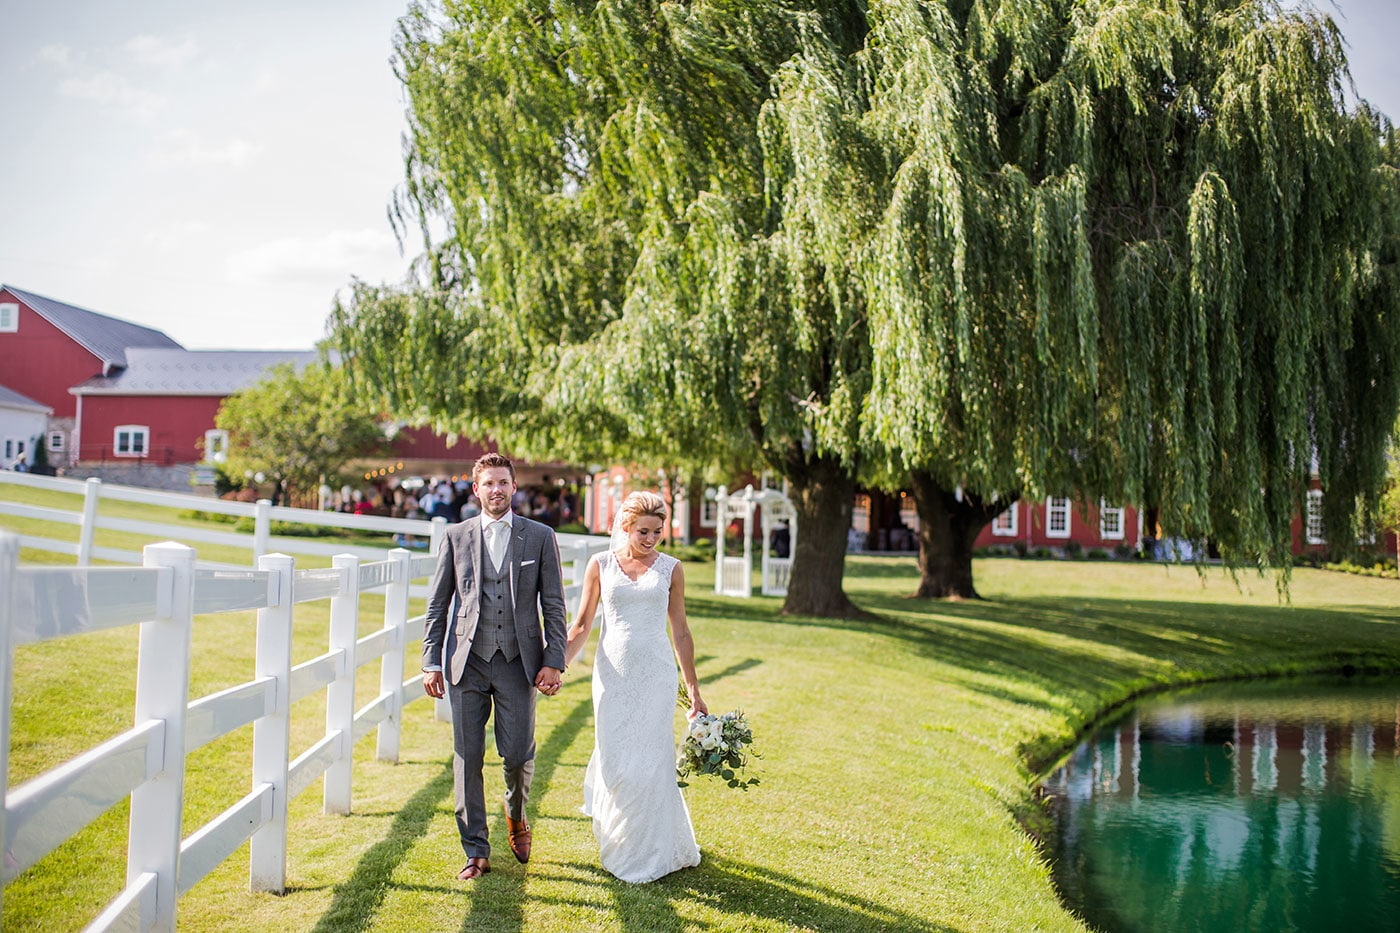 Wedding Photography Pond View Farm